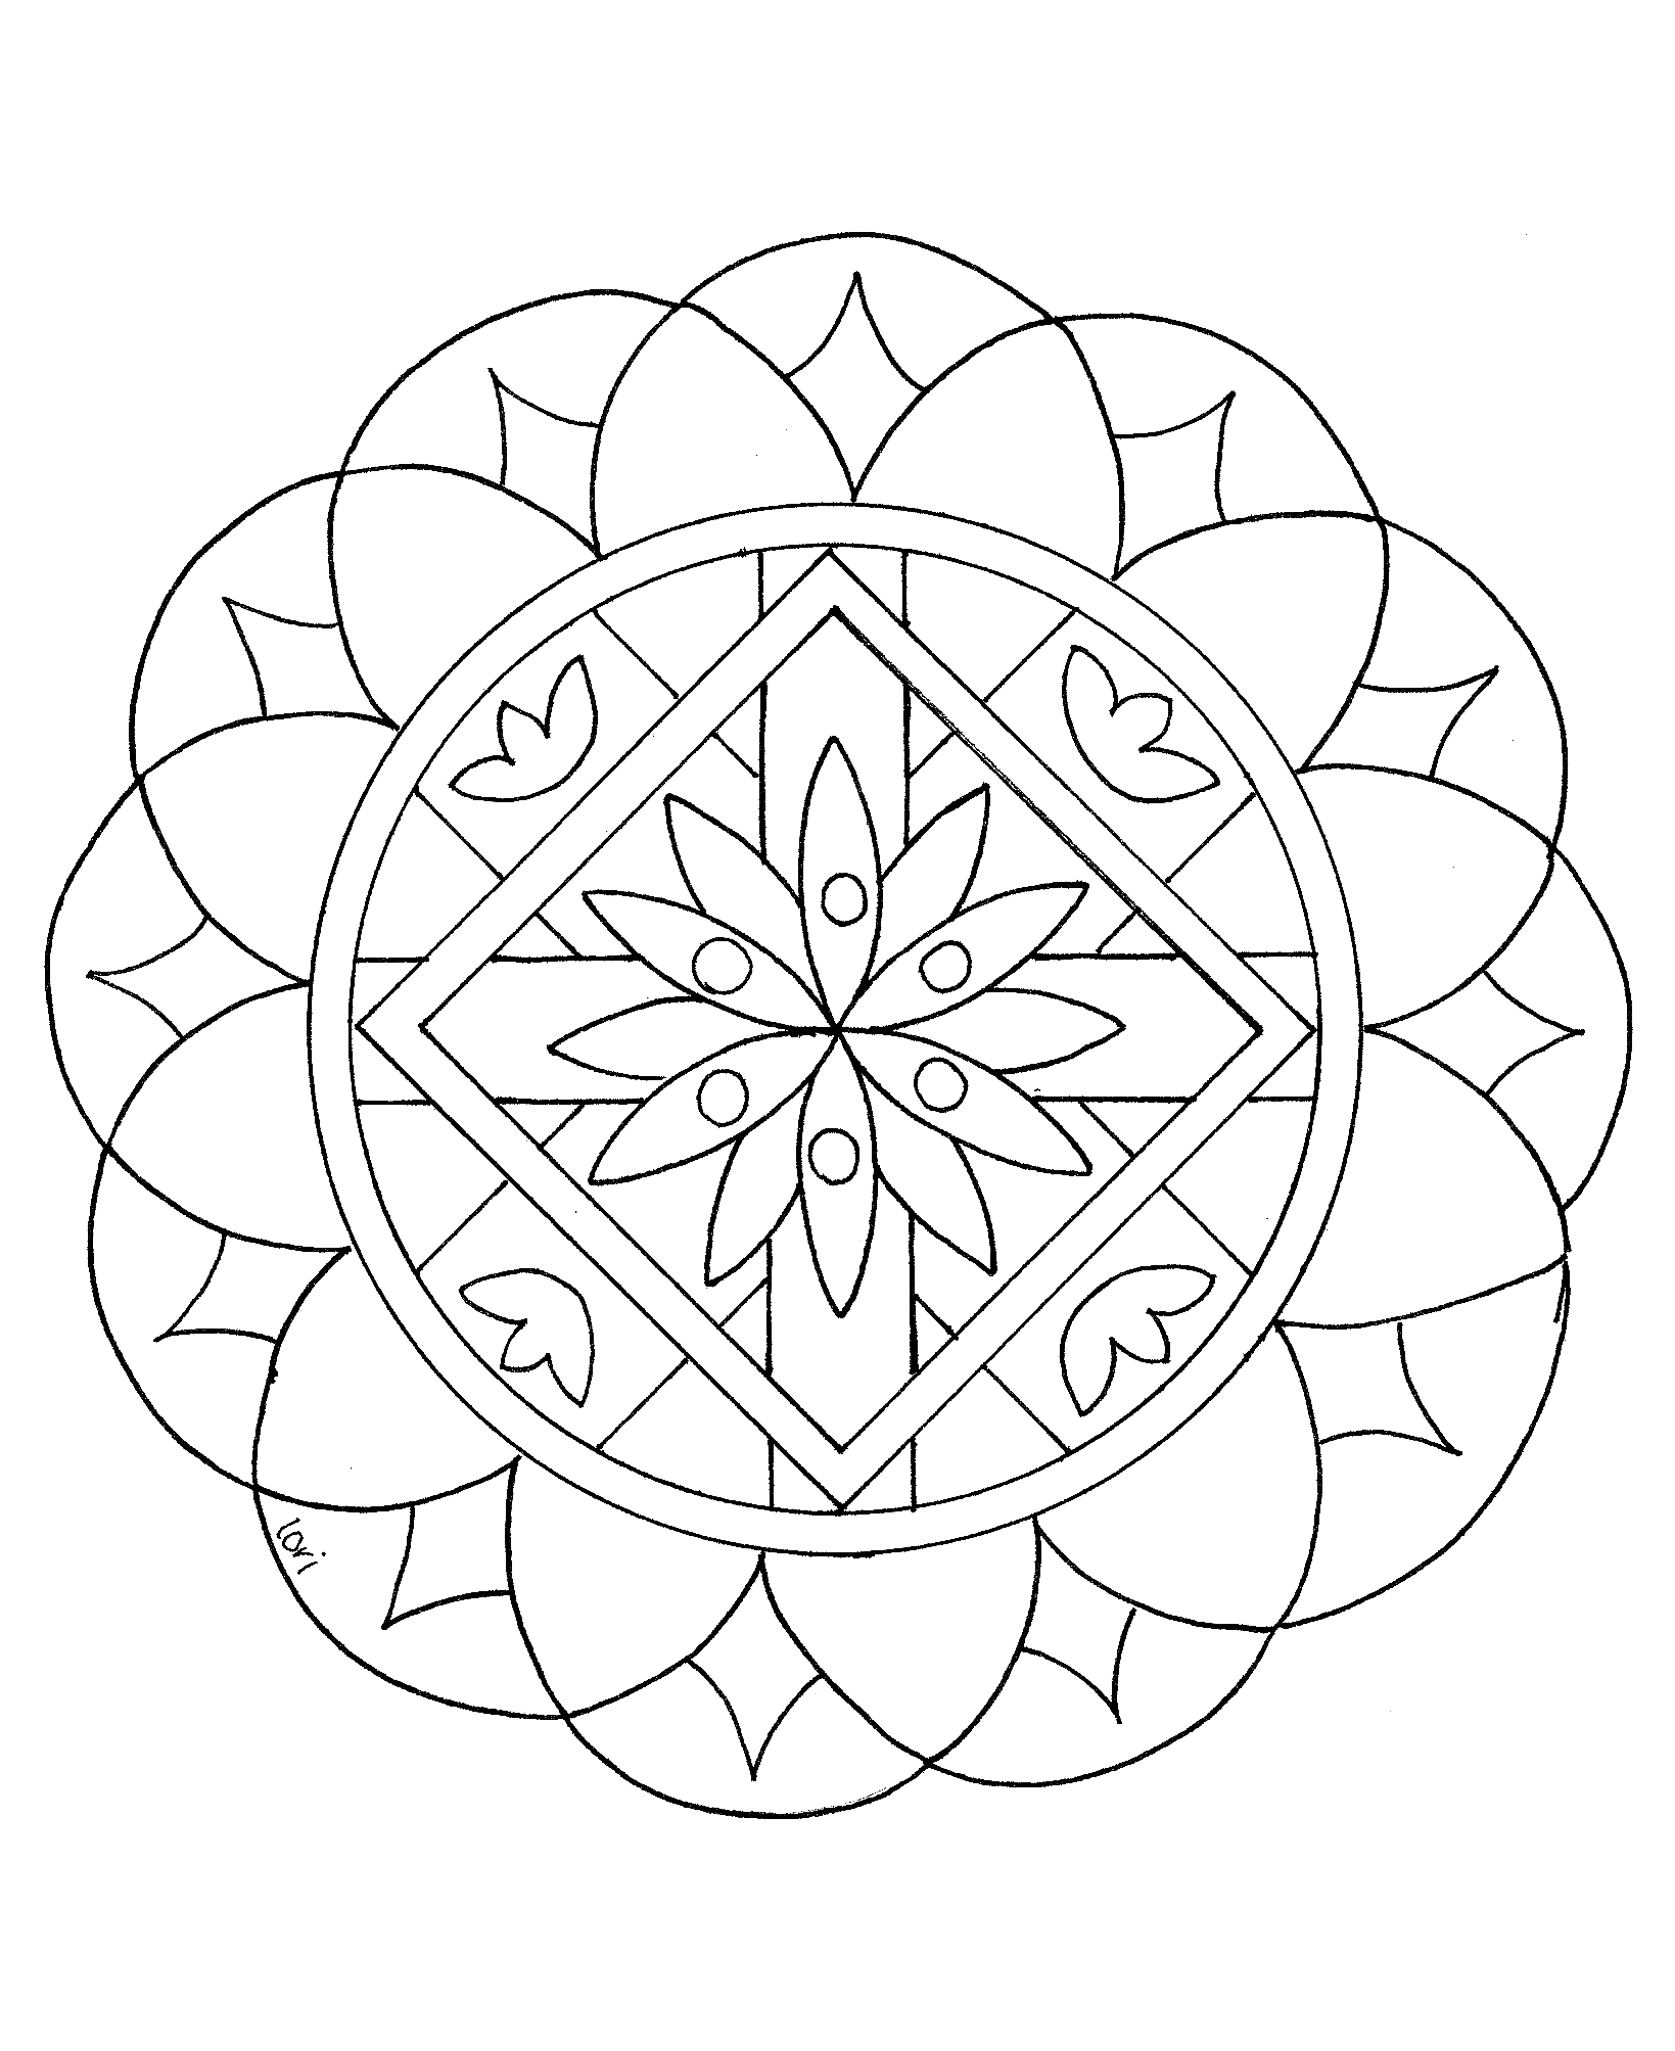 Mandala to color easy children 16 easy mandalas for kids for Free printable zen coloring pages